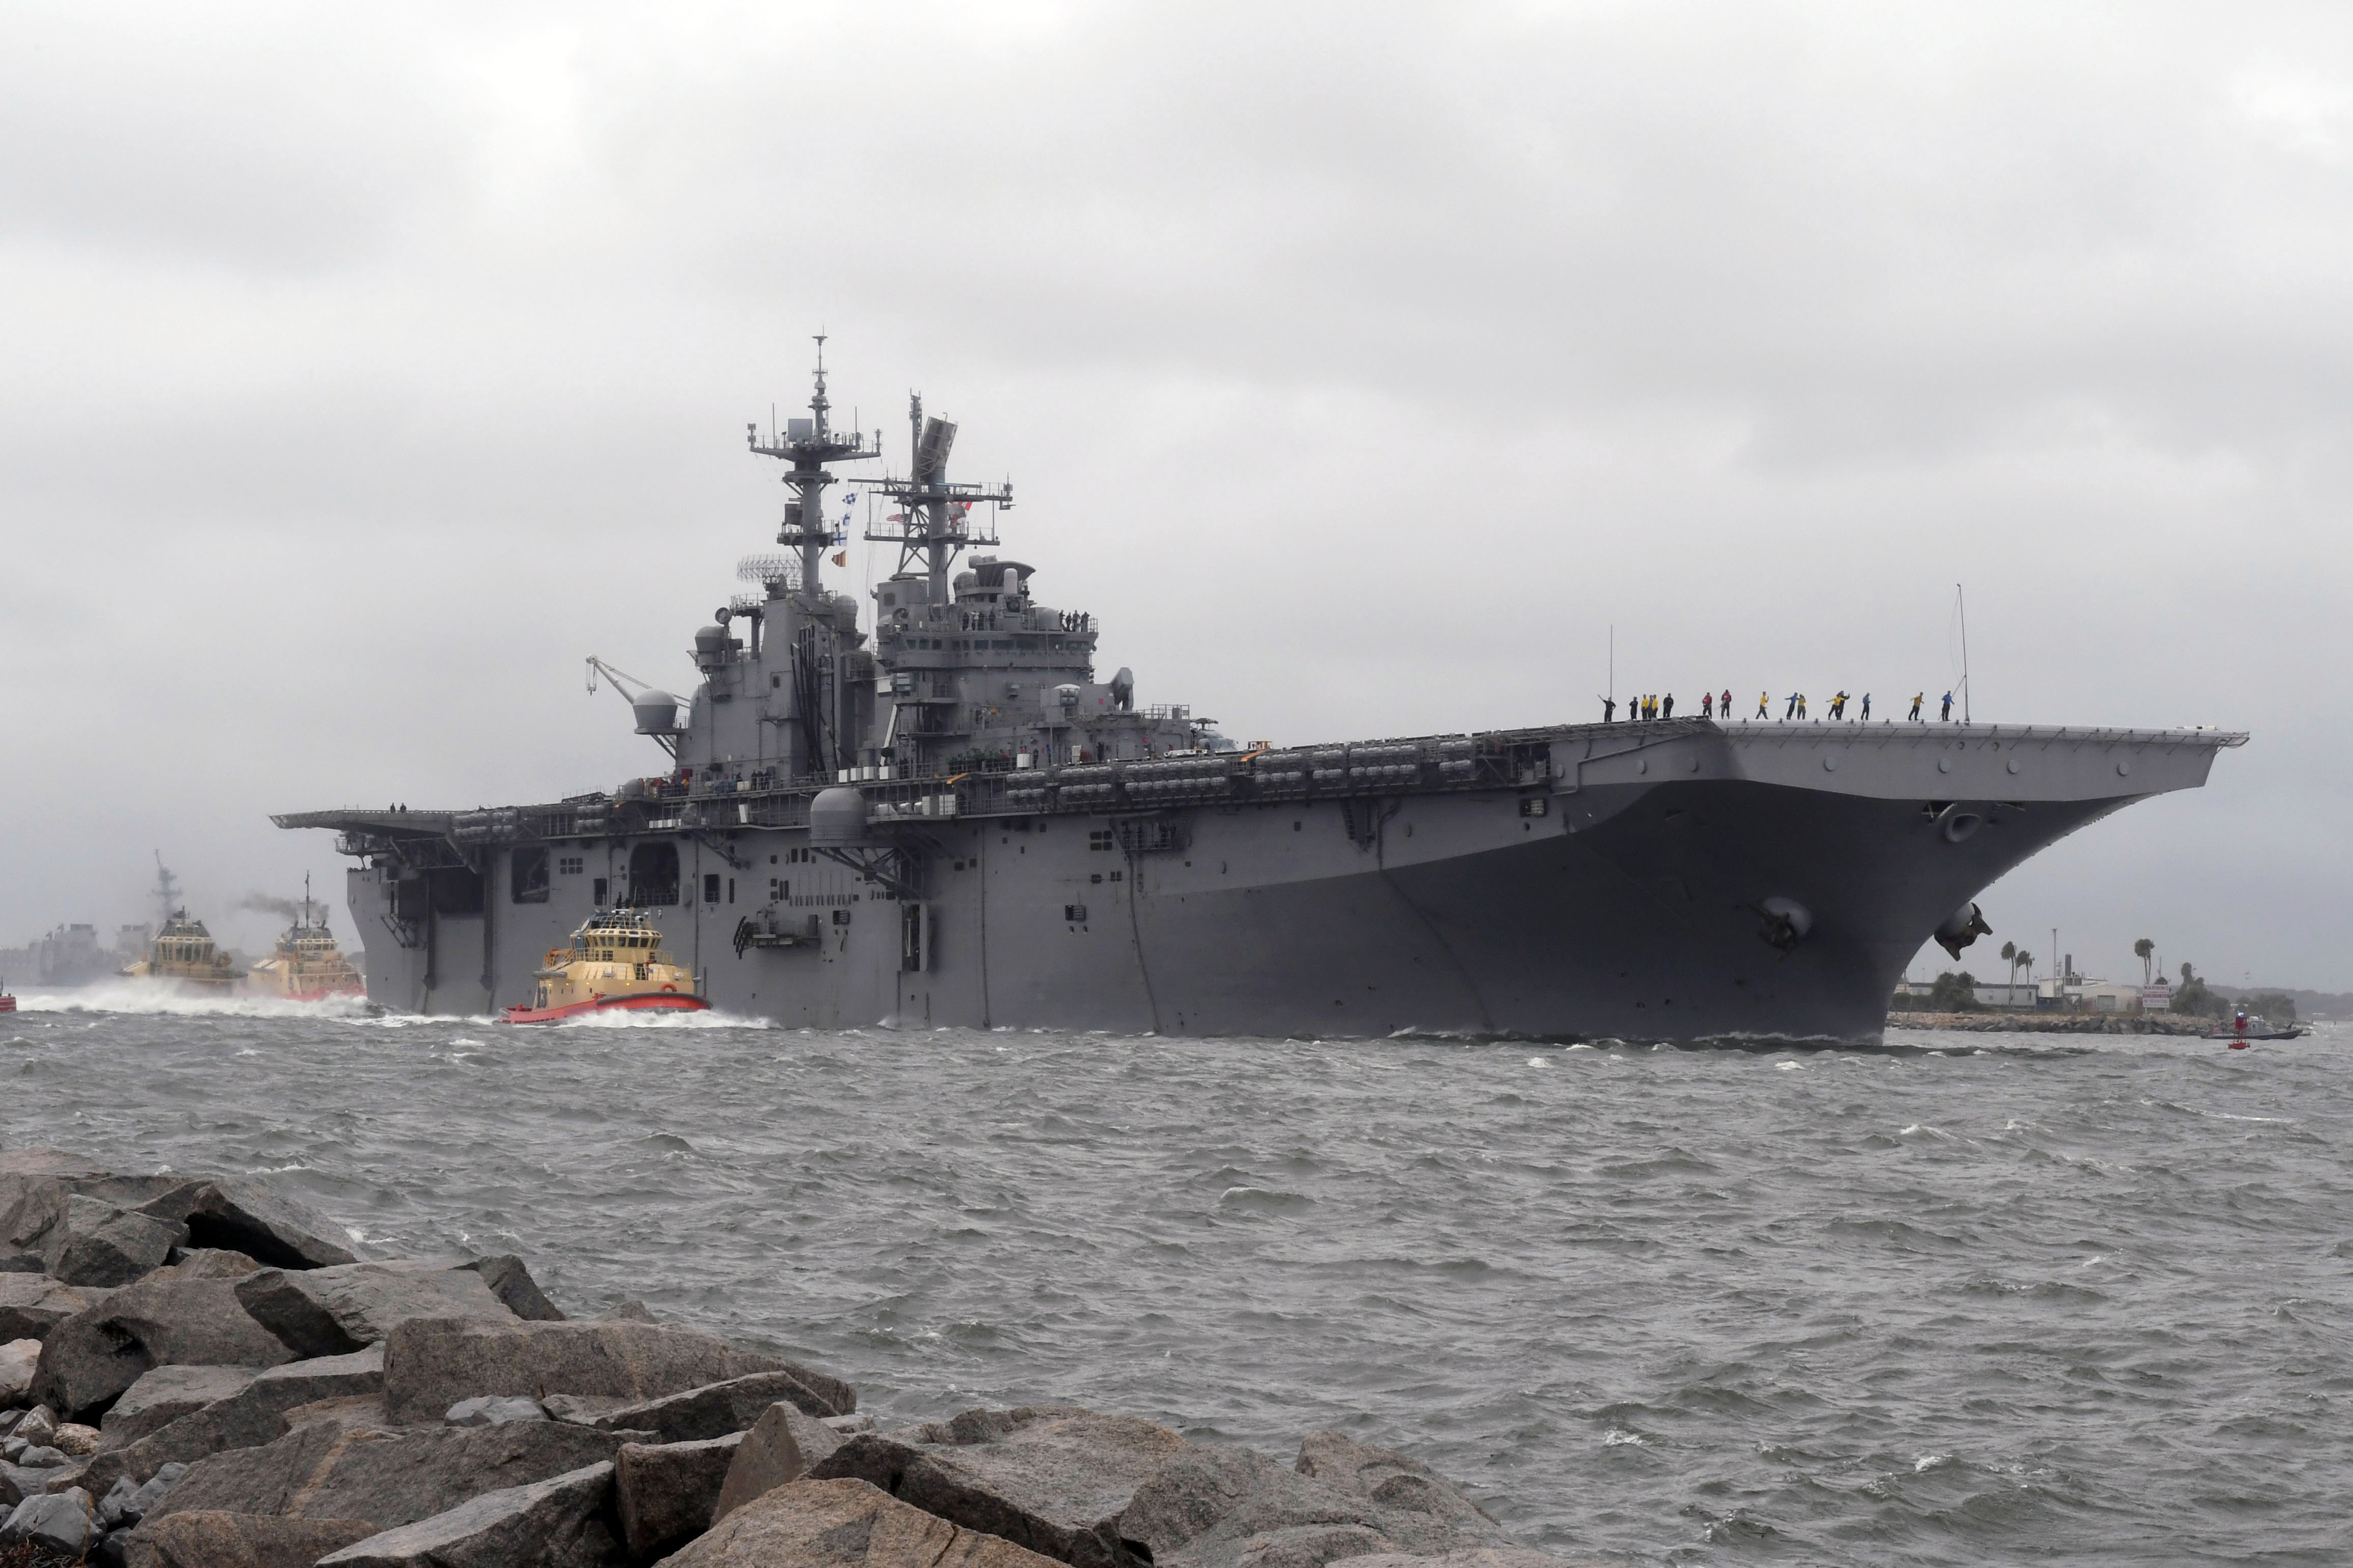 Amphibious assault ship USS Iwo Jima (LHD 7) departs Naval Station Mayport in preparation of Hurricane Matthew's arrival onto Florida's eastern coast. US Navy photo.